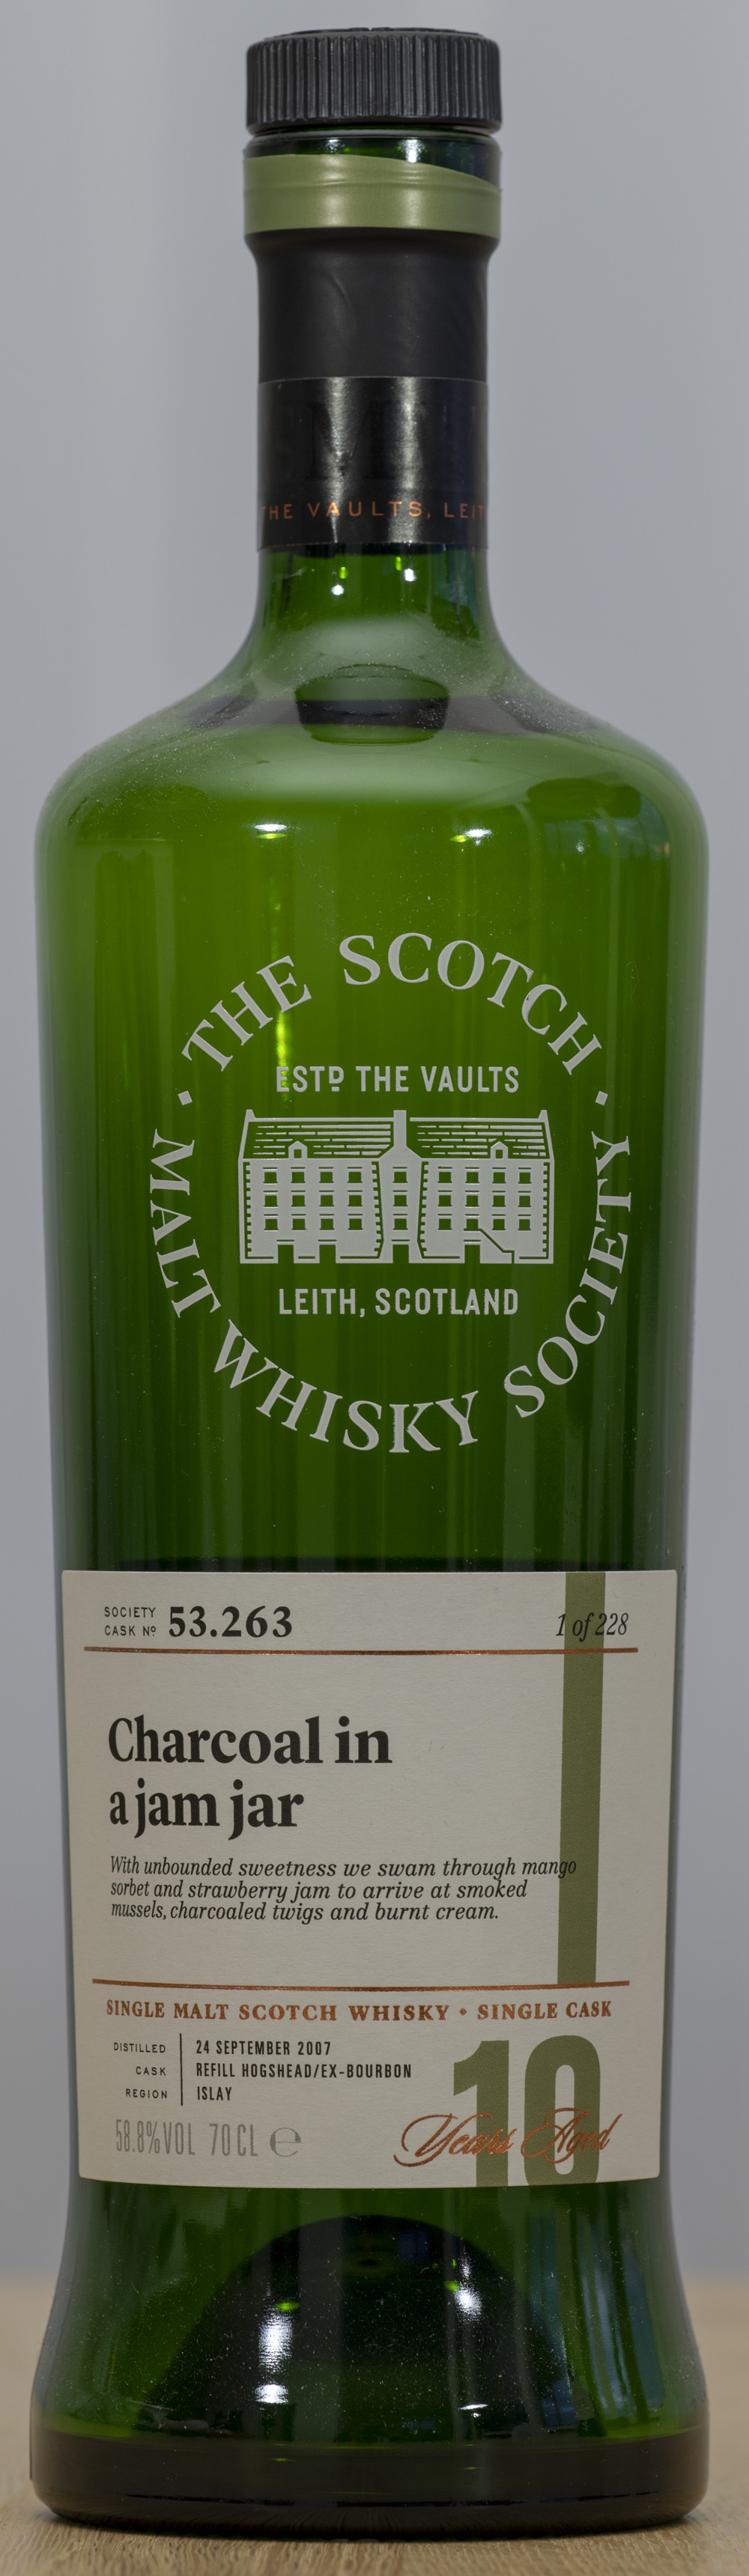 Billede: PHC_1533 SMWS 53.263 Charcoal in a jam jar - bottle front.jpg